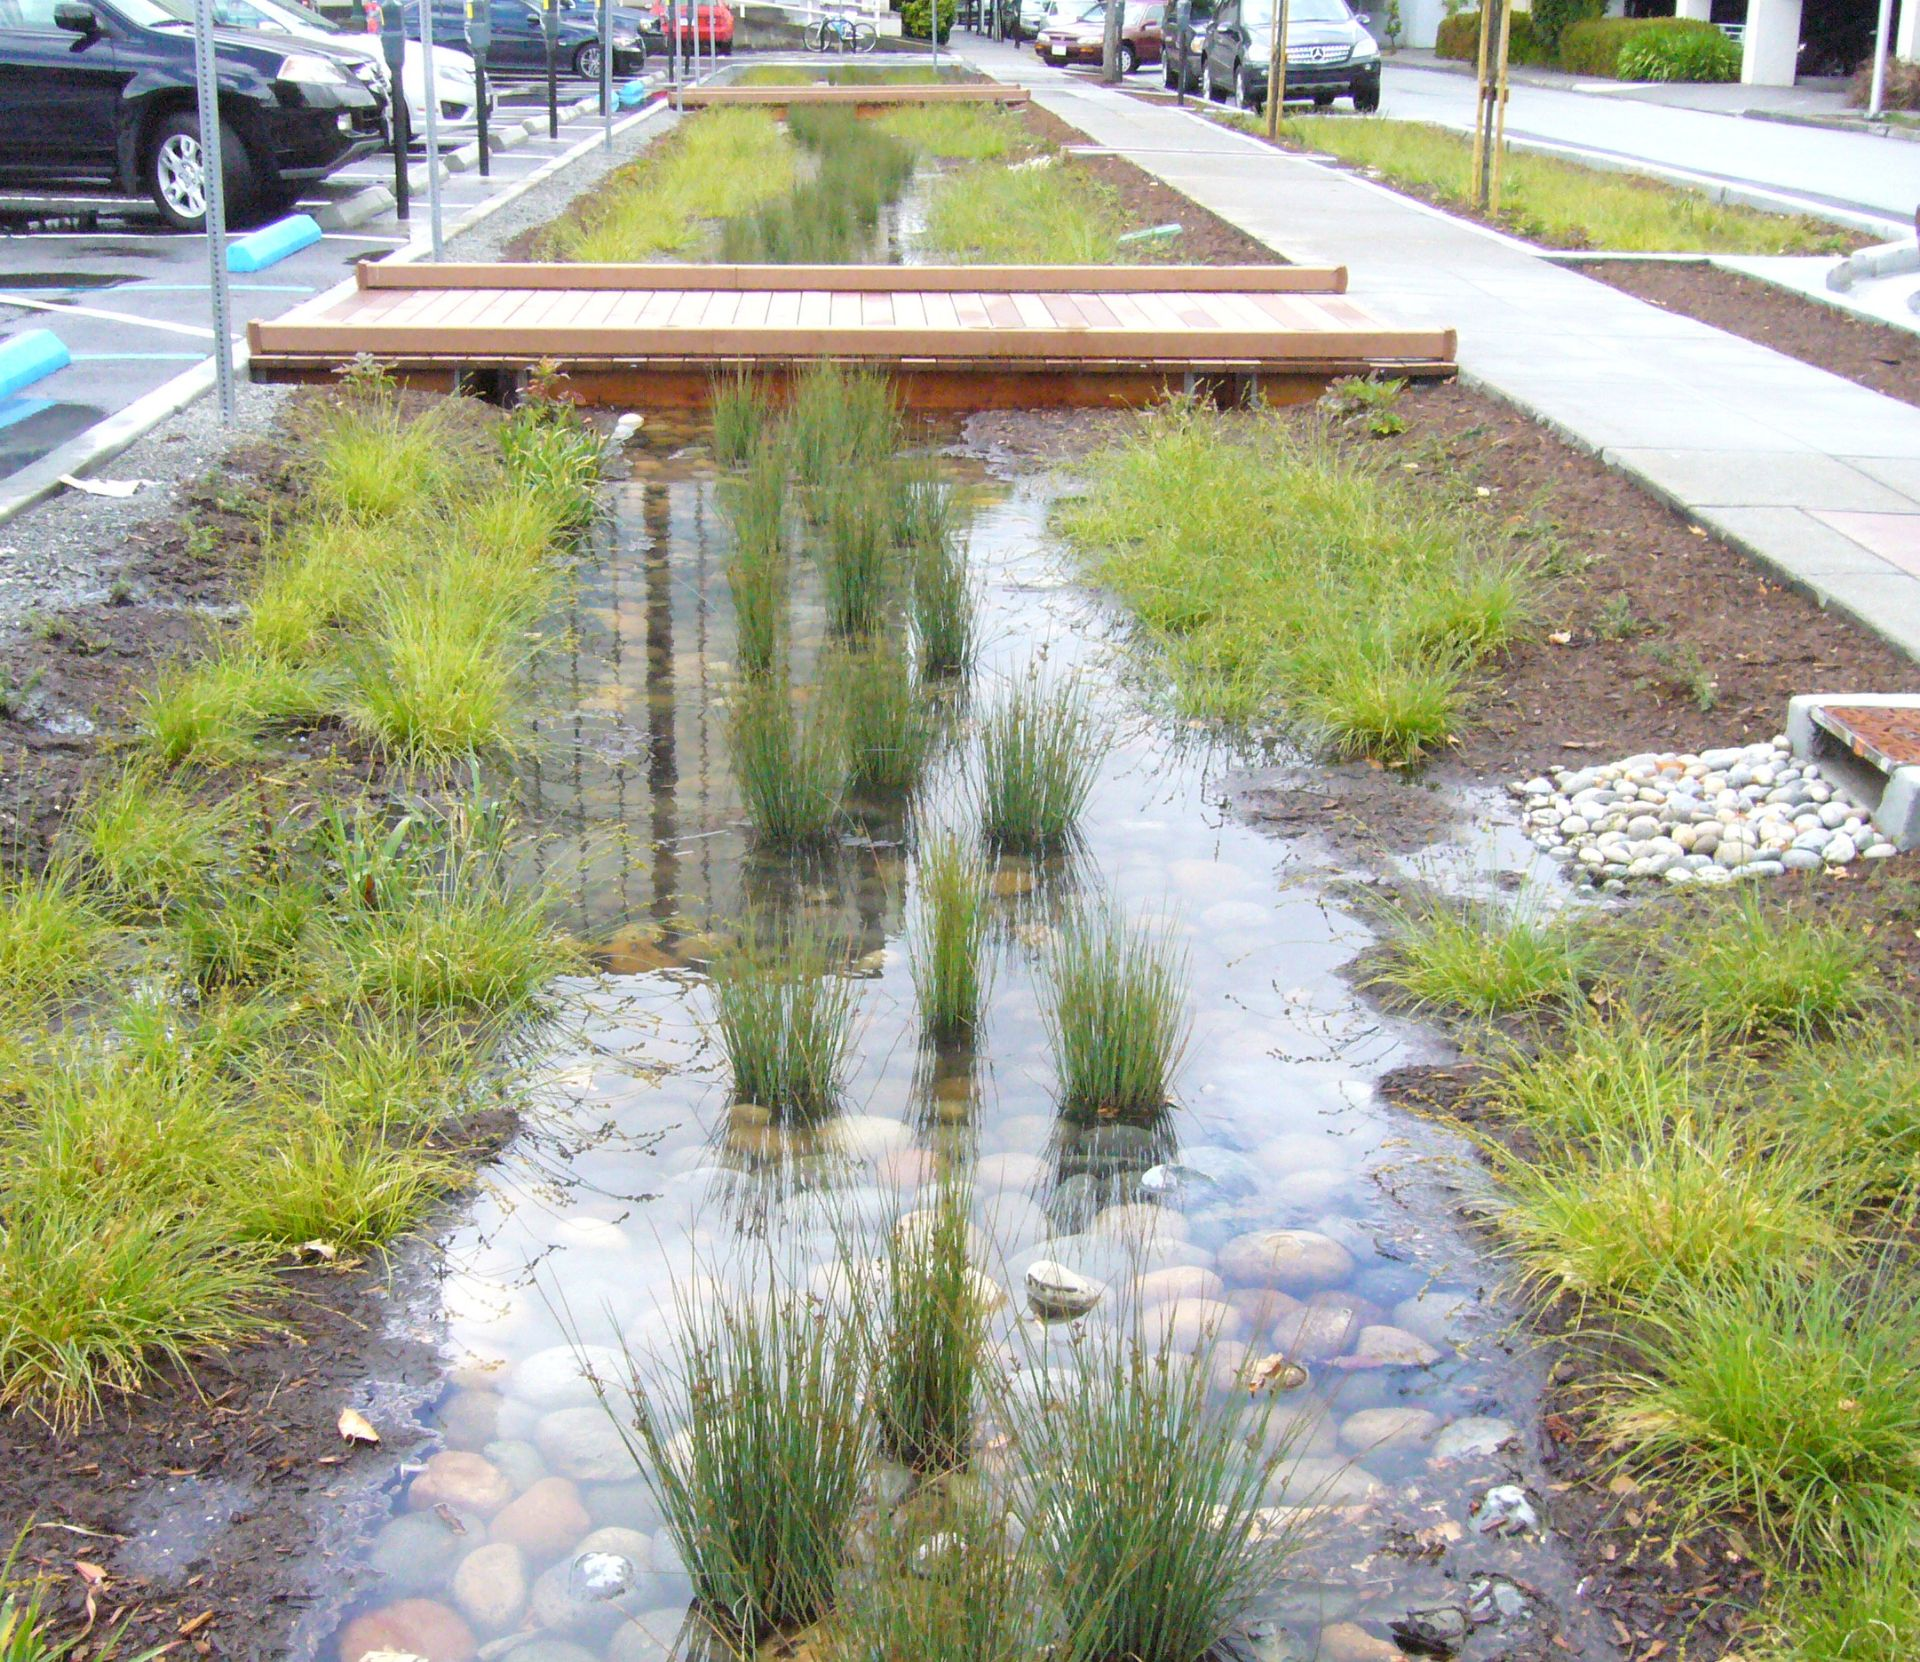 Landscape features like rocks, plants, and wood chips help absorb runoff between concrete